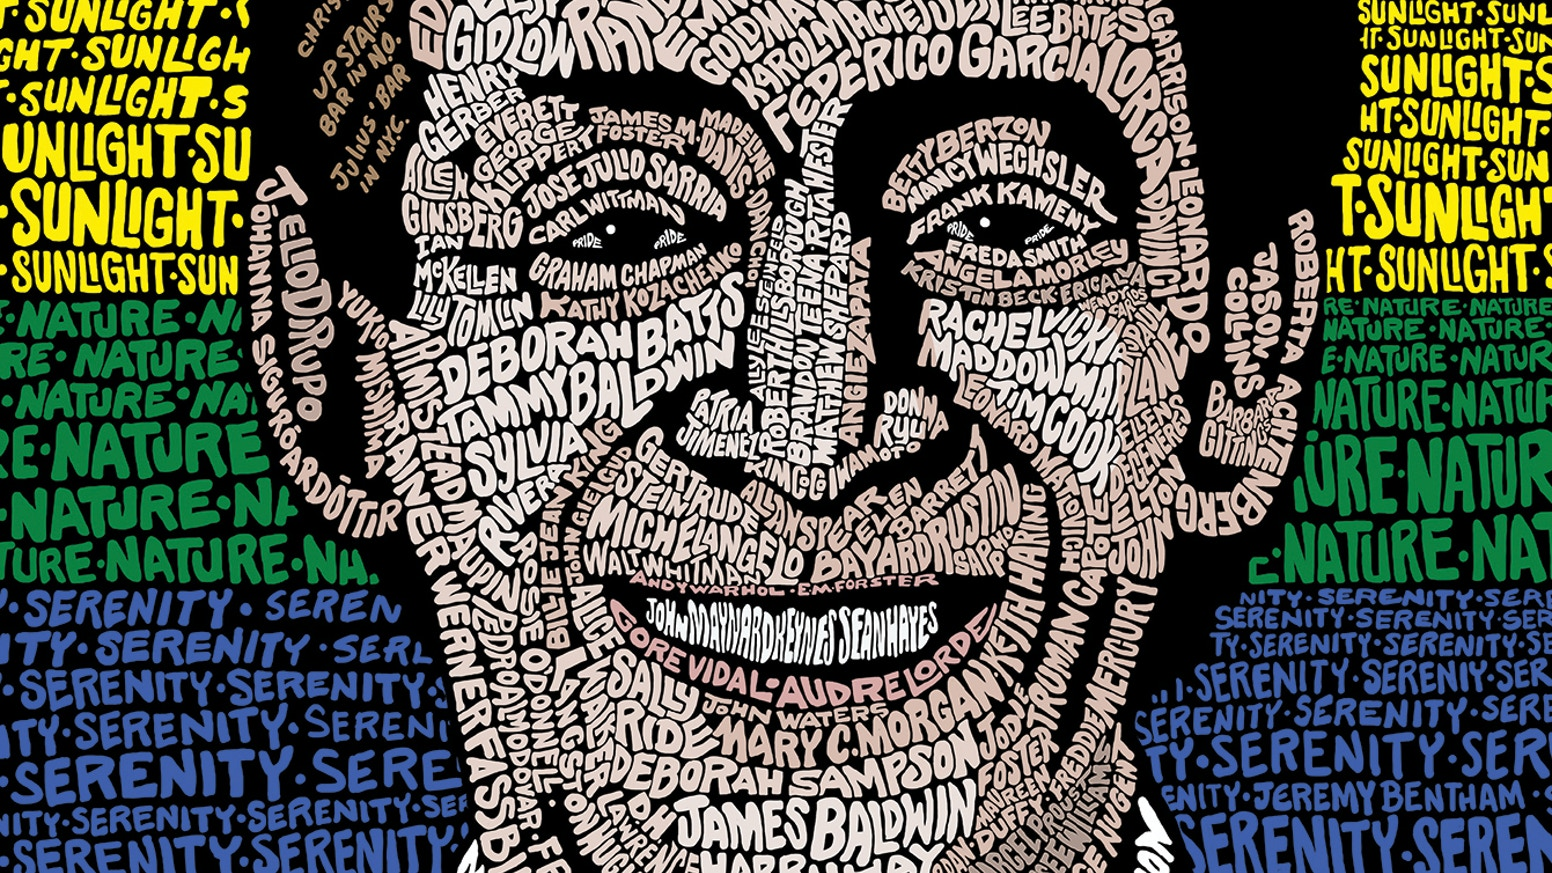 Limited-Edition HARVEY MILK: Hope Will Never Be Silent screen print...  made up of names from over 150 figures from LGBTQ history.